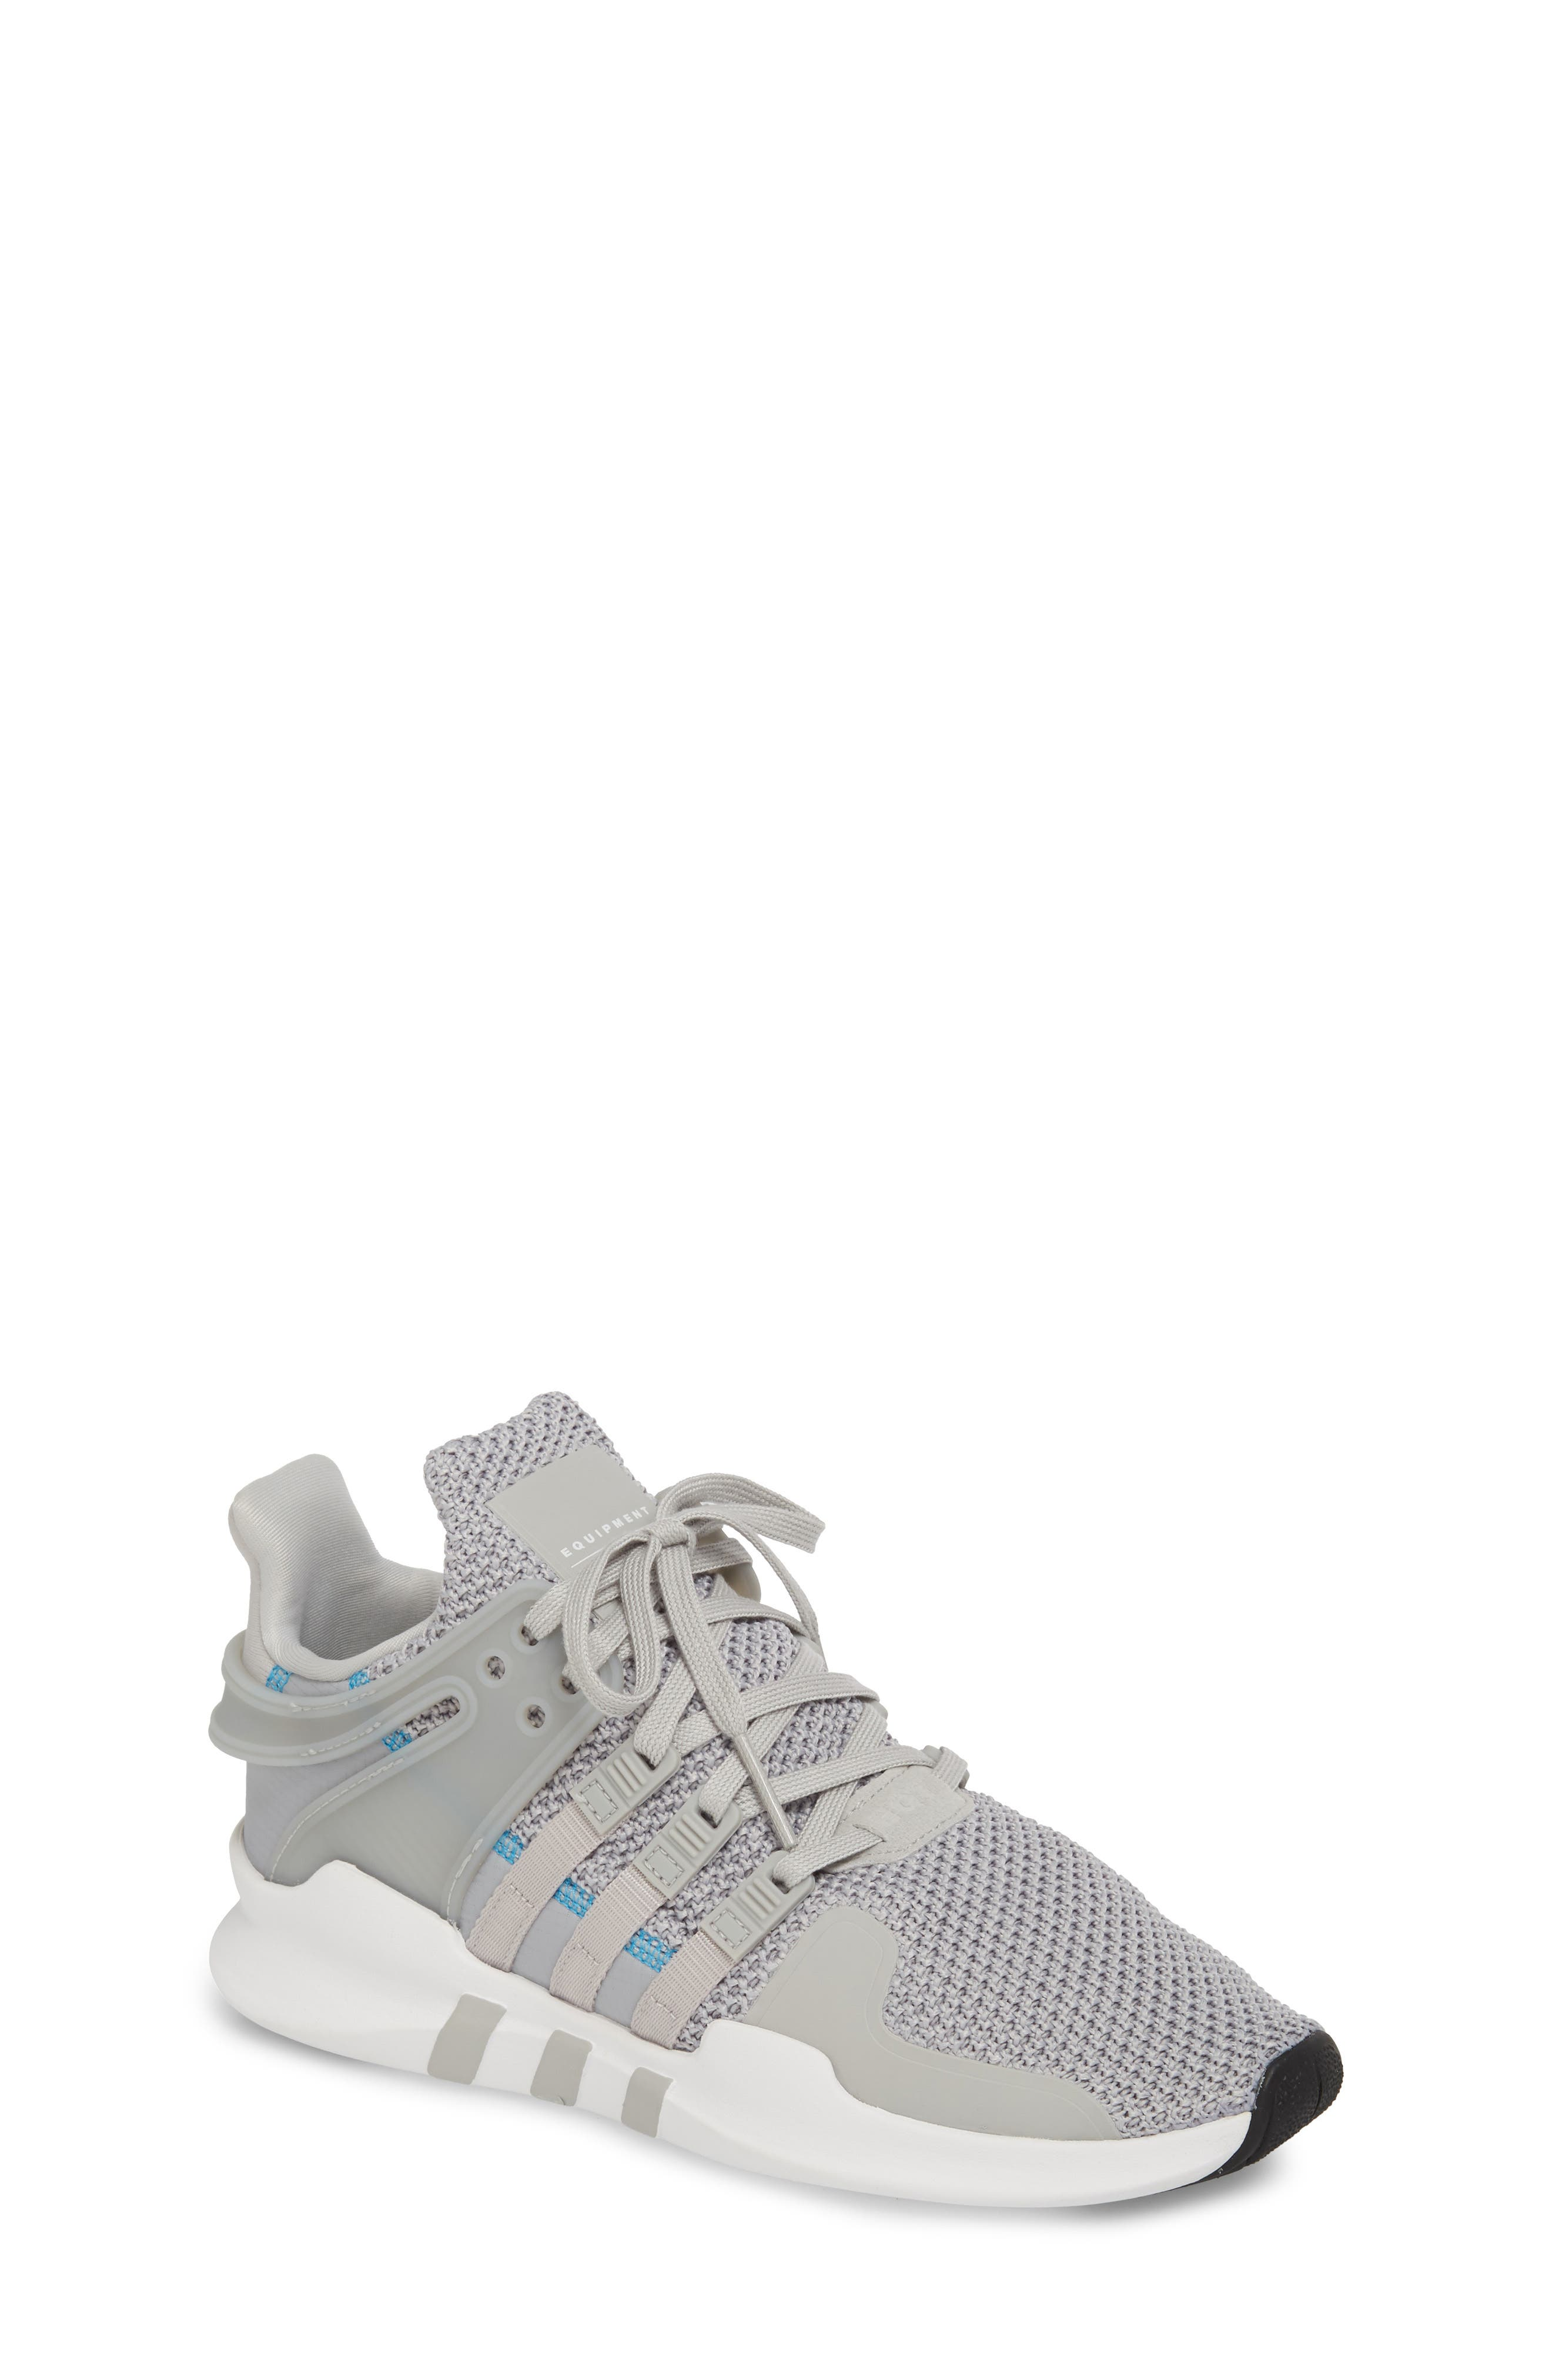 EQT Support Adv Sneaker,                             Main thumbnail 1, color,                             Grey / Grey / White